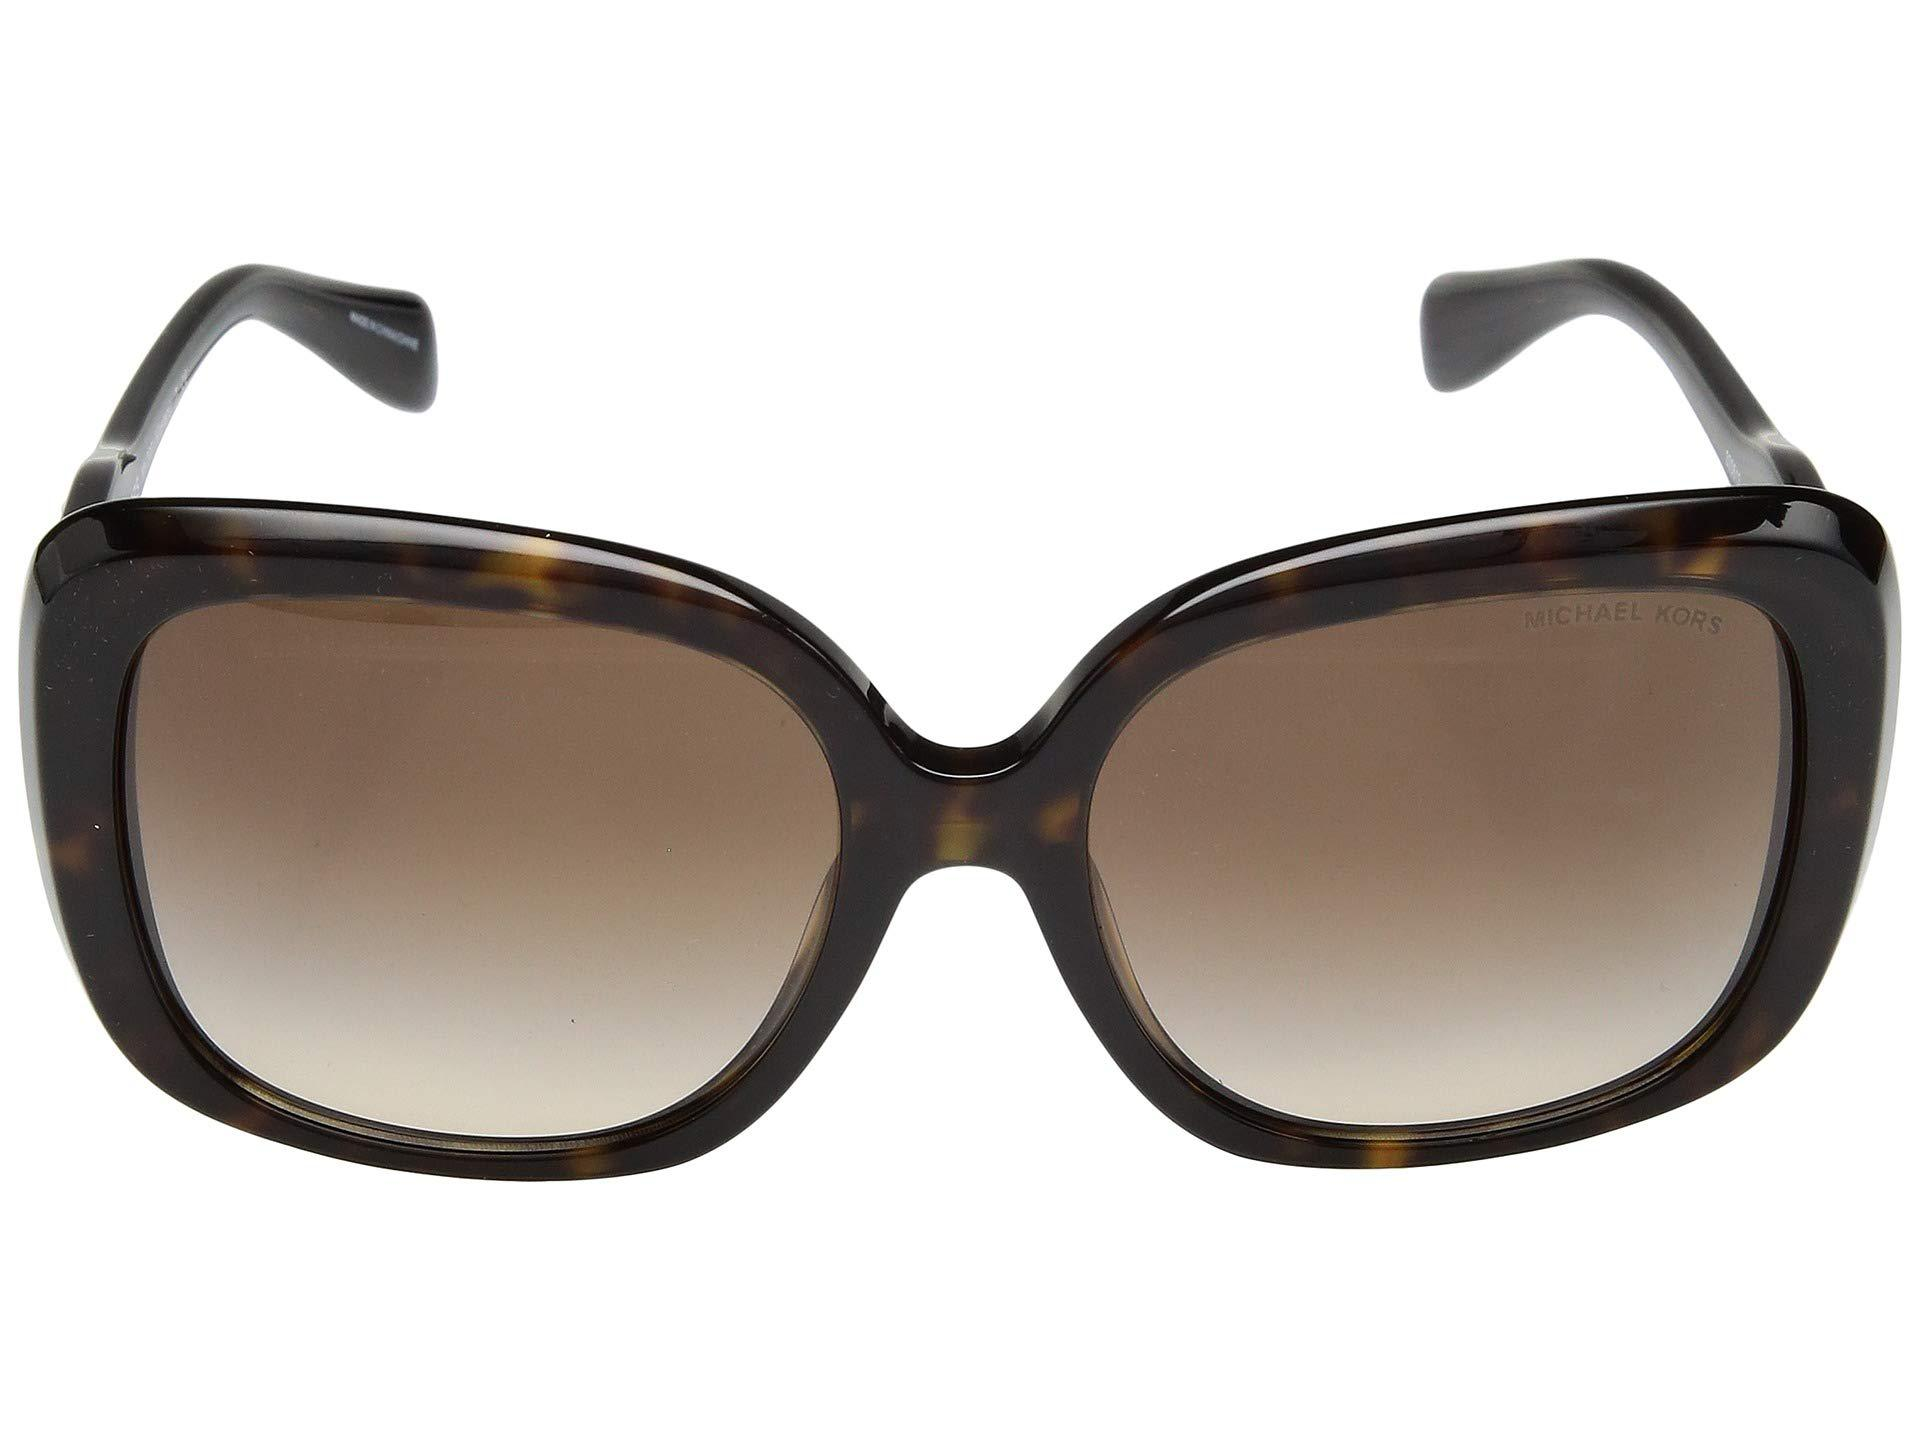 9b36b3c9cbc73 Lyst - Michael Kors 0mk2081 56mm (black gold Tortoise grey Solid ...